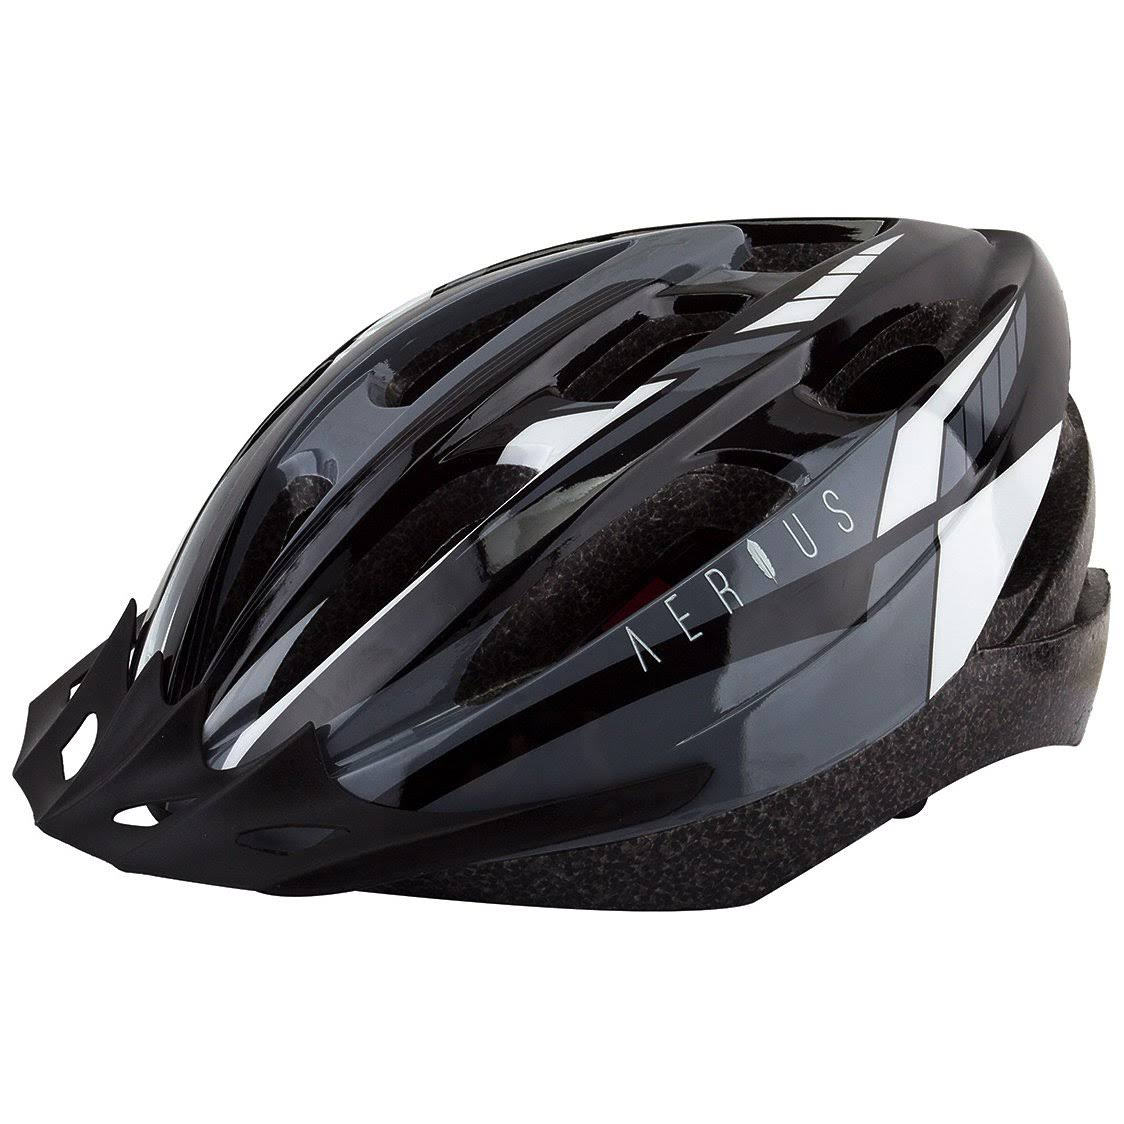 Aerius V19-Sport Helmet MD/LG Black/Grey